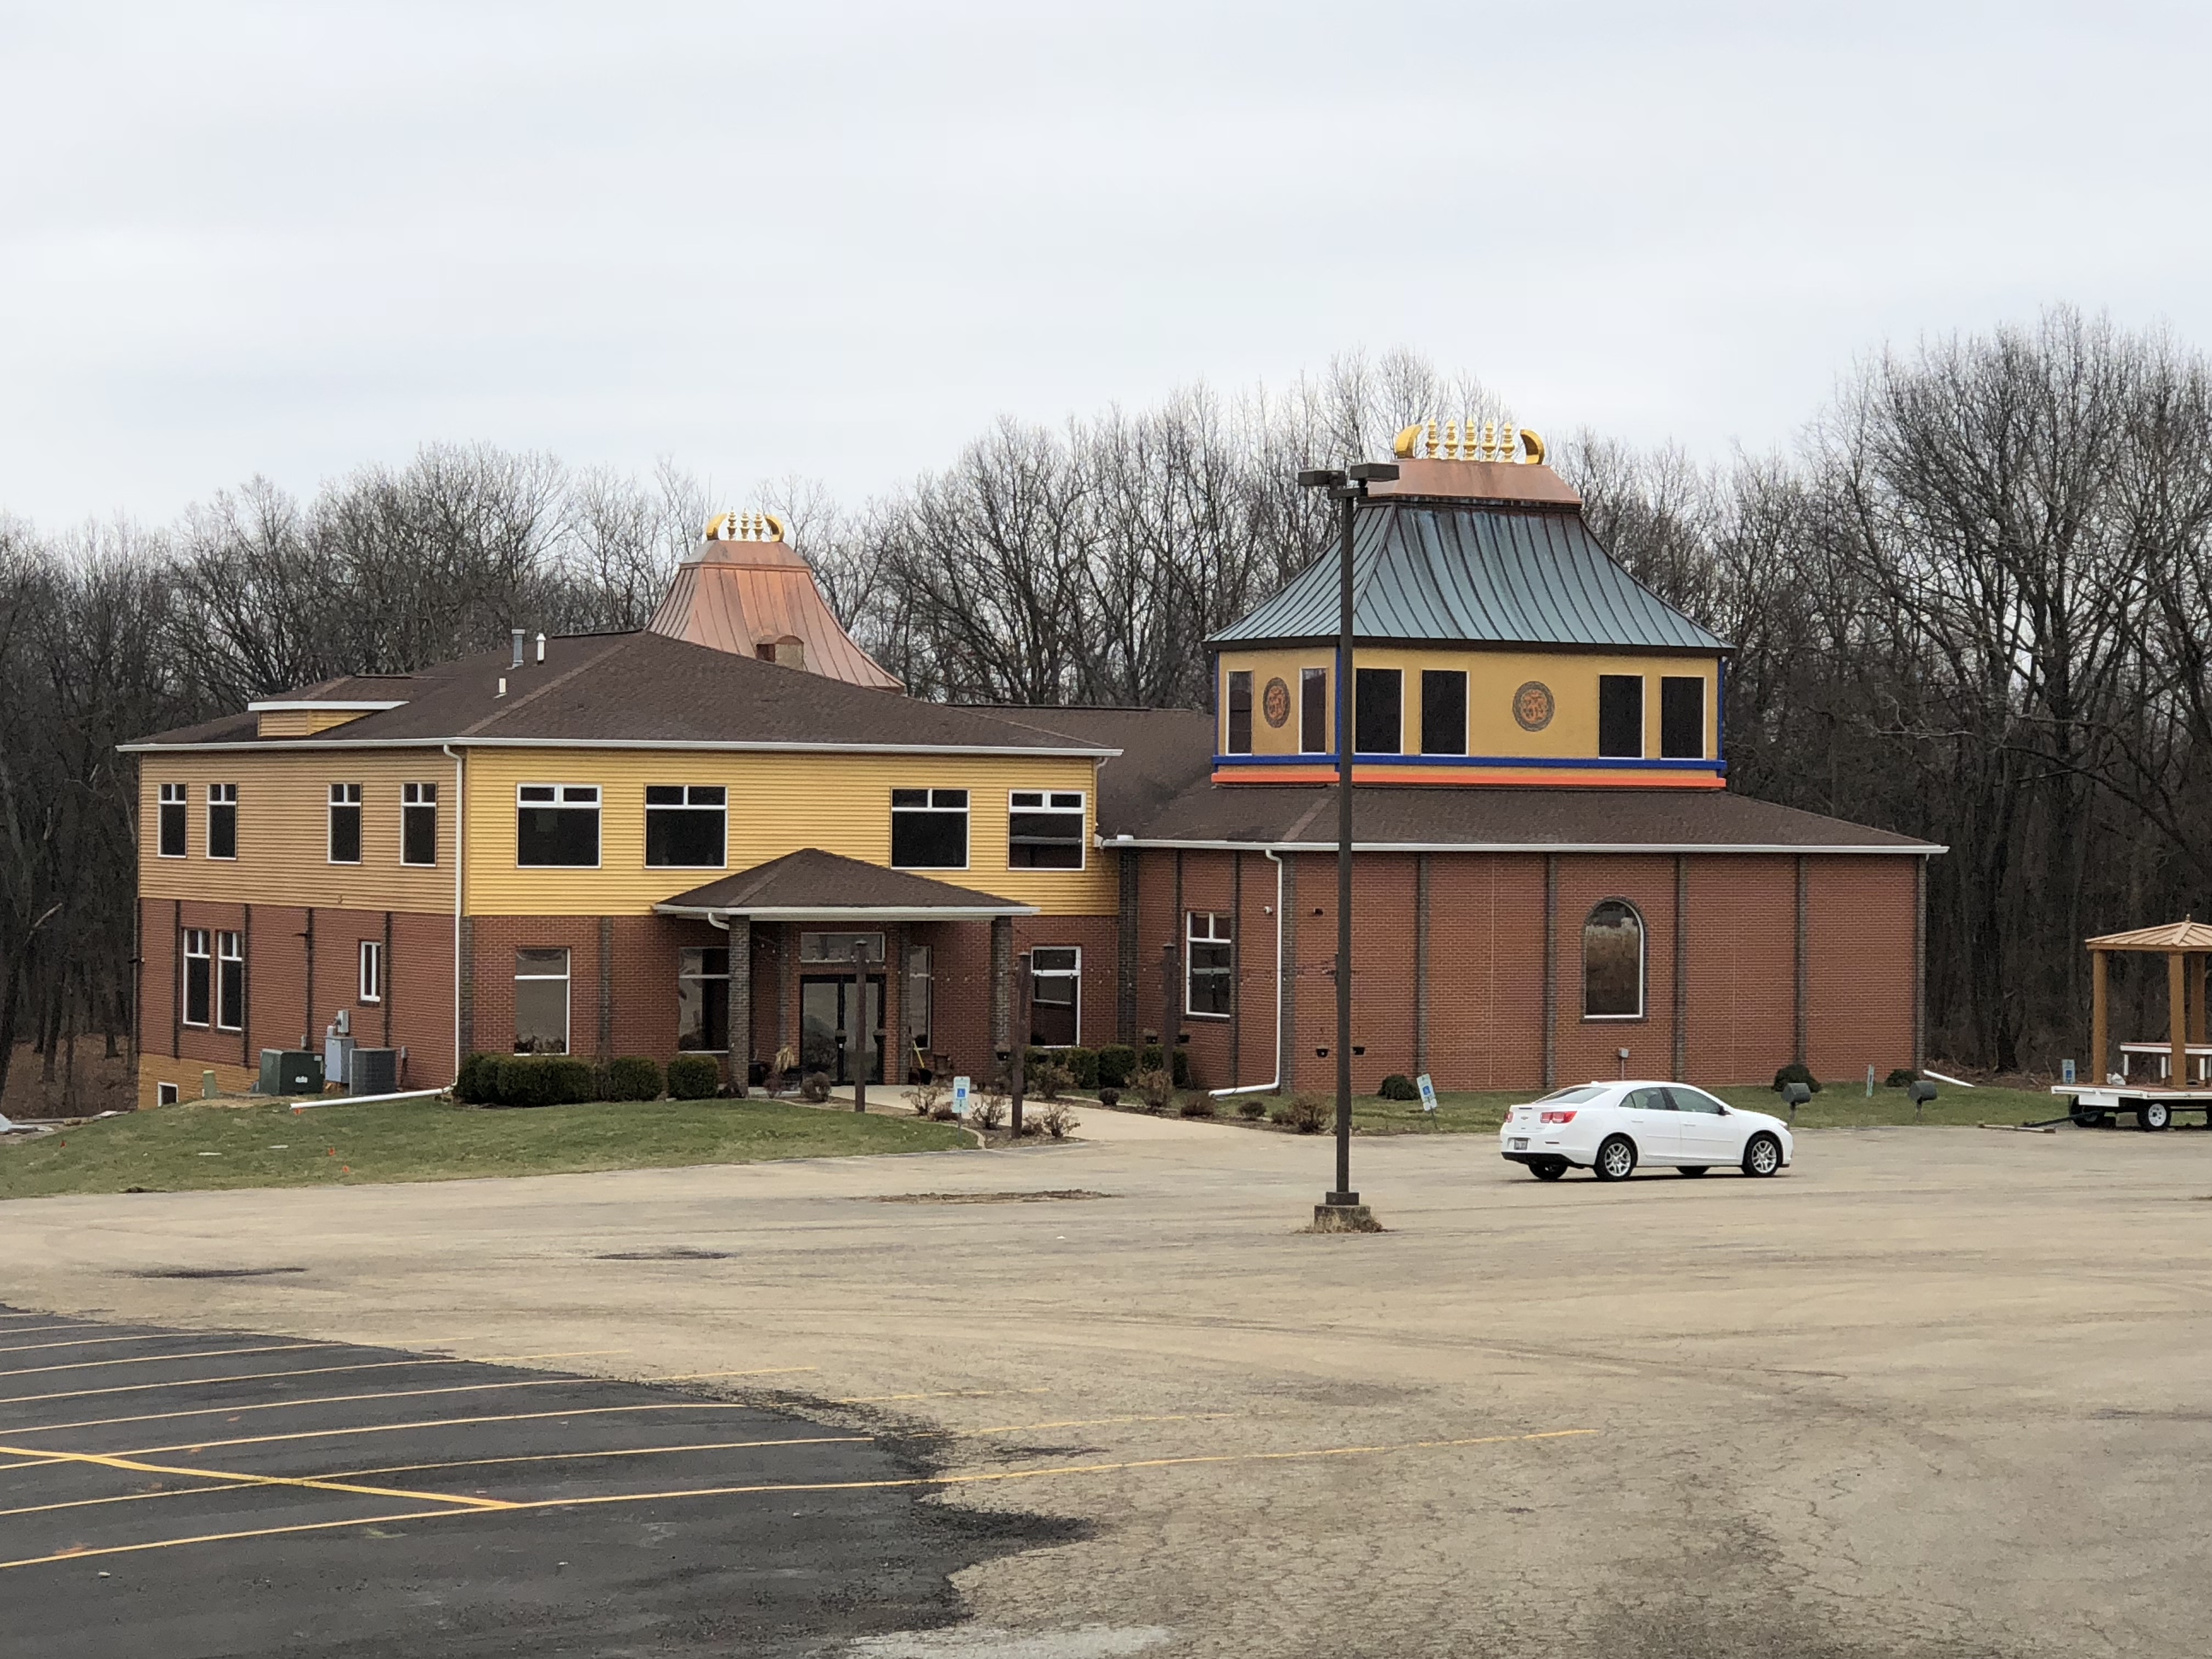 Hindu Temple of Central Illinois - Chanting & Bhajan Scripts